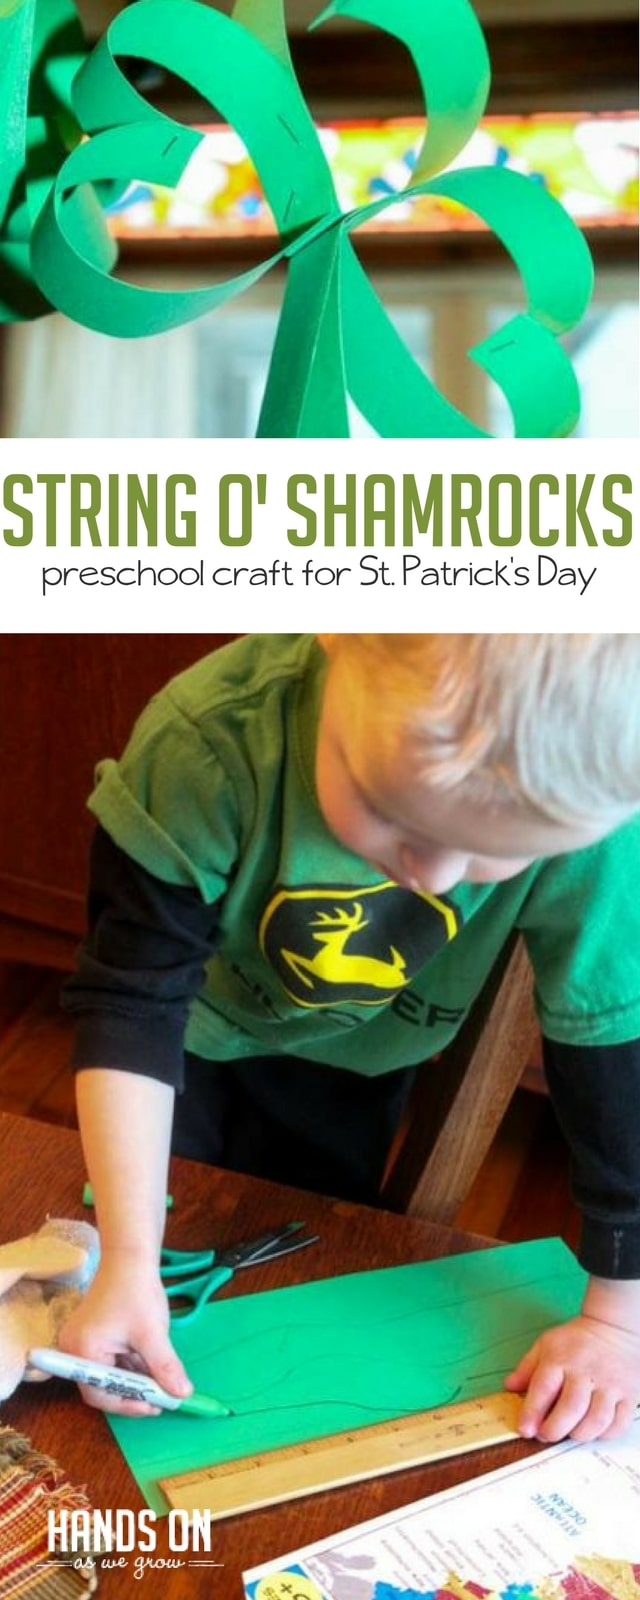 Preschool Craft: Shamrocks for St. Patrick\'s Day | Hands On As We Grow